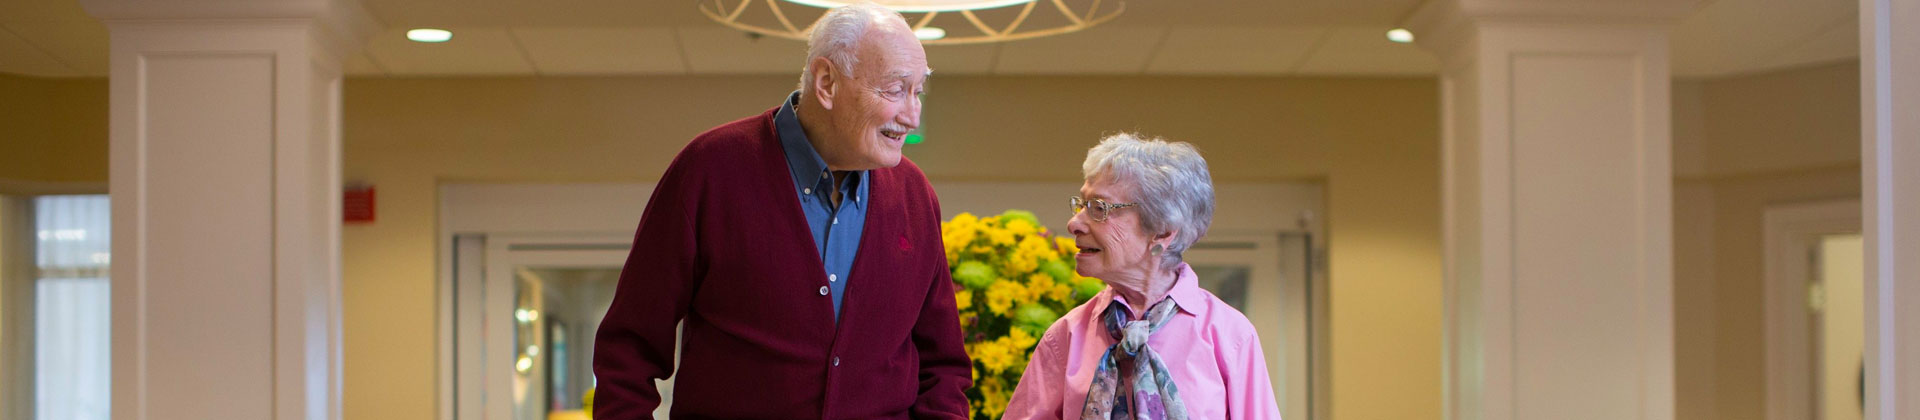 Photo and Video Gallery North Oaks Senior Living